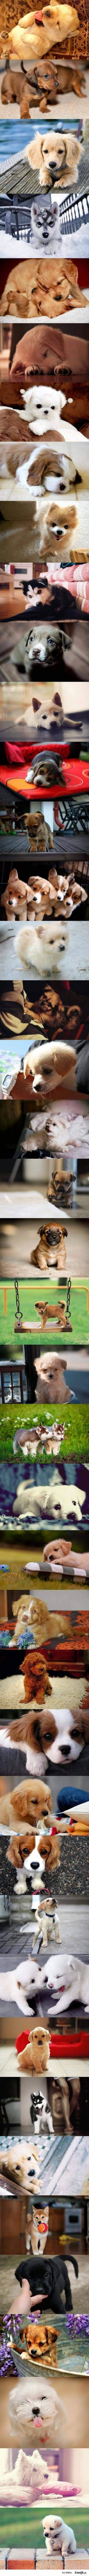 puppies :): Cute Overload, Cute Puppies, My Heart, Adorable Puppies, Cutest Puppies, Puppy, Puppies Love, Bad Day, Puppiesss